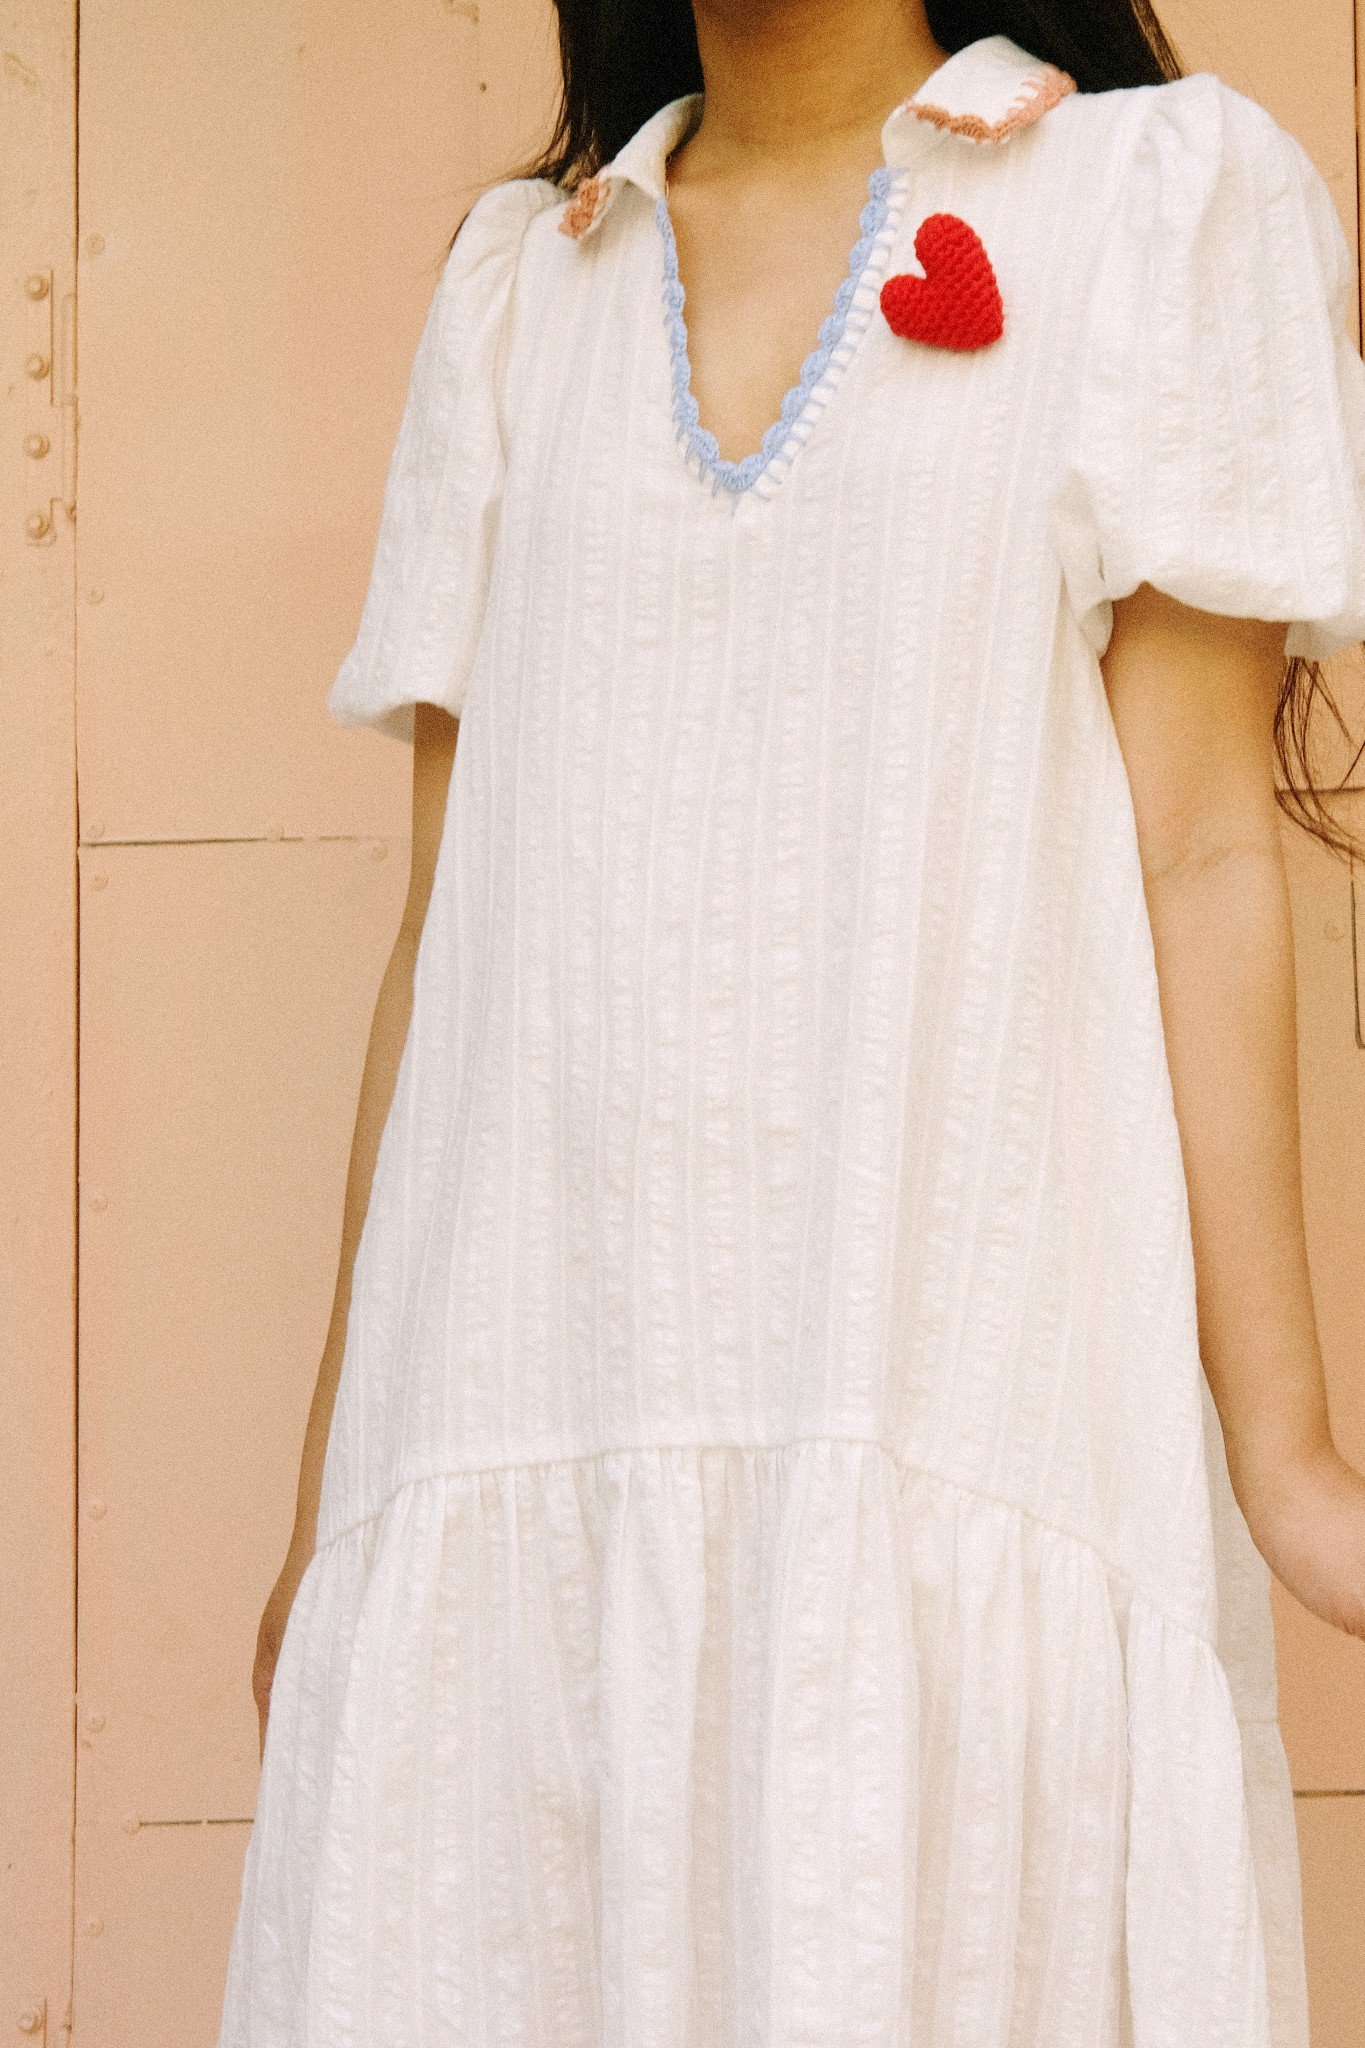 White Highlow Dress With Handmade Crochet Details